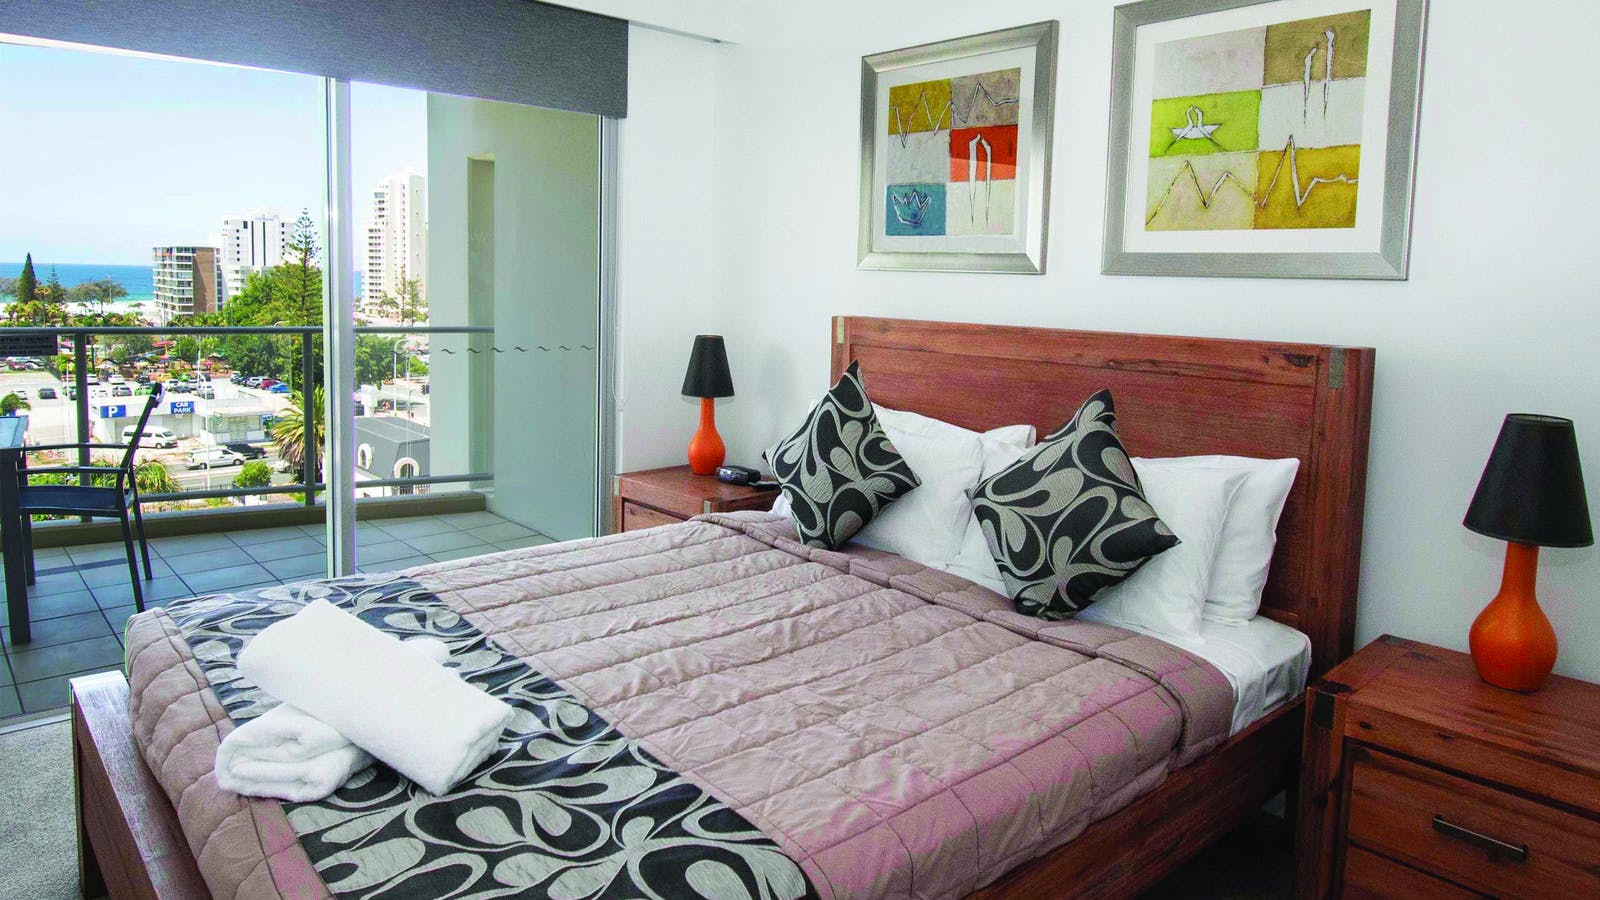 View of a master bedroom showing access to balcony and view over Surfers Paradise and Ocean